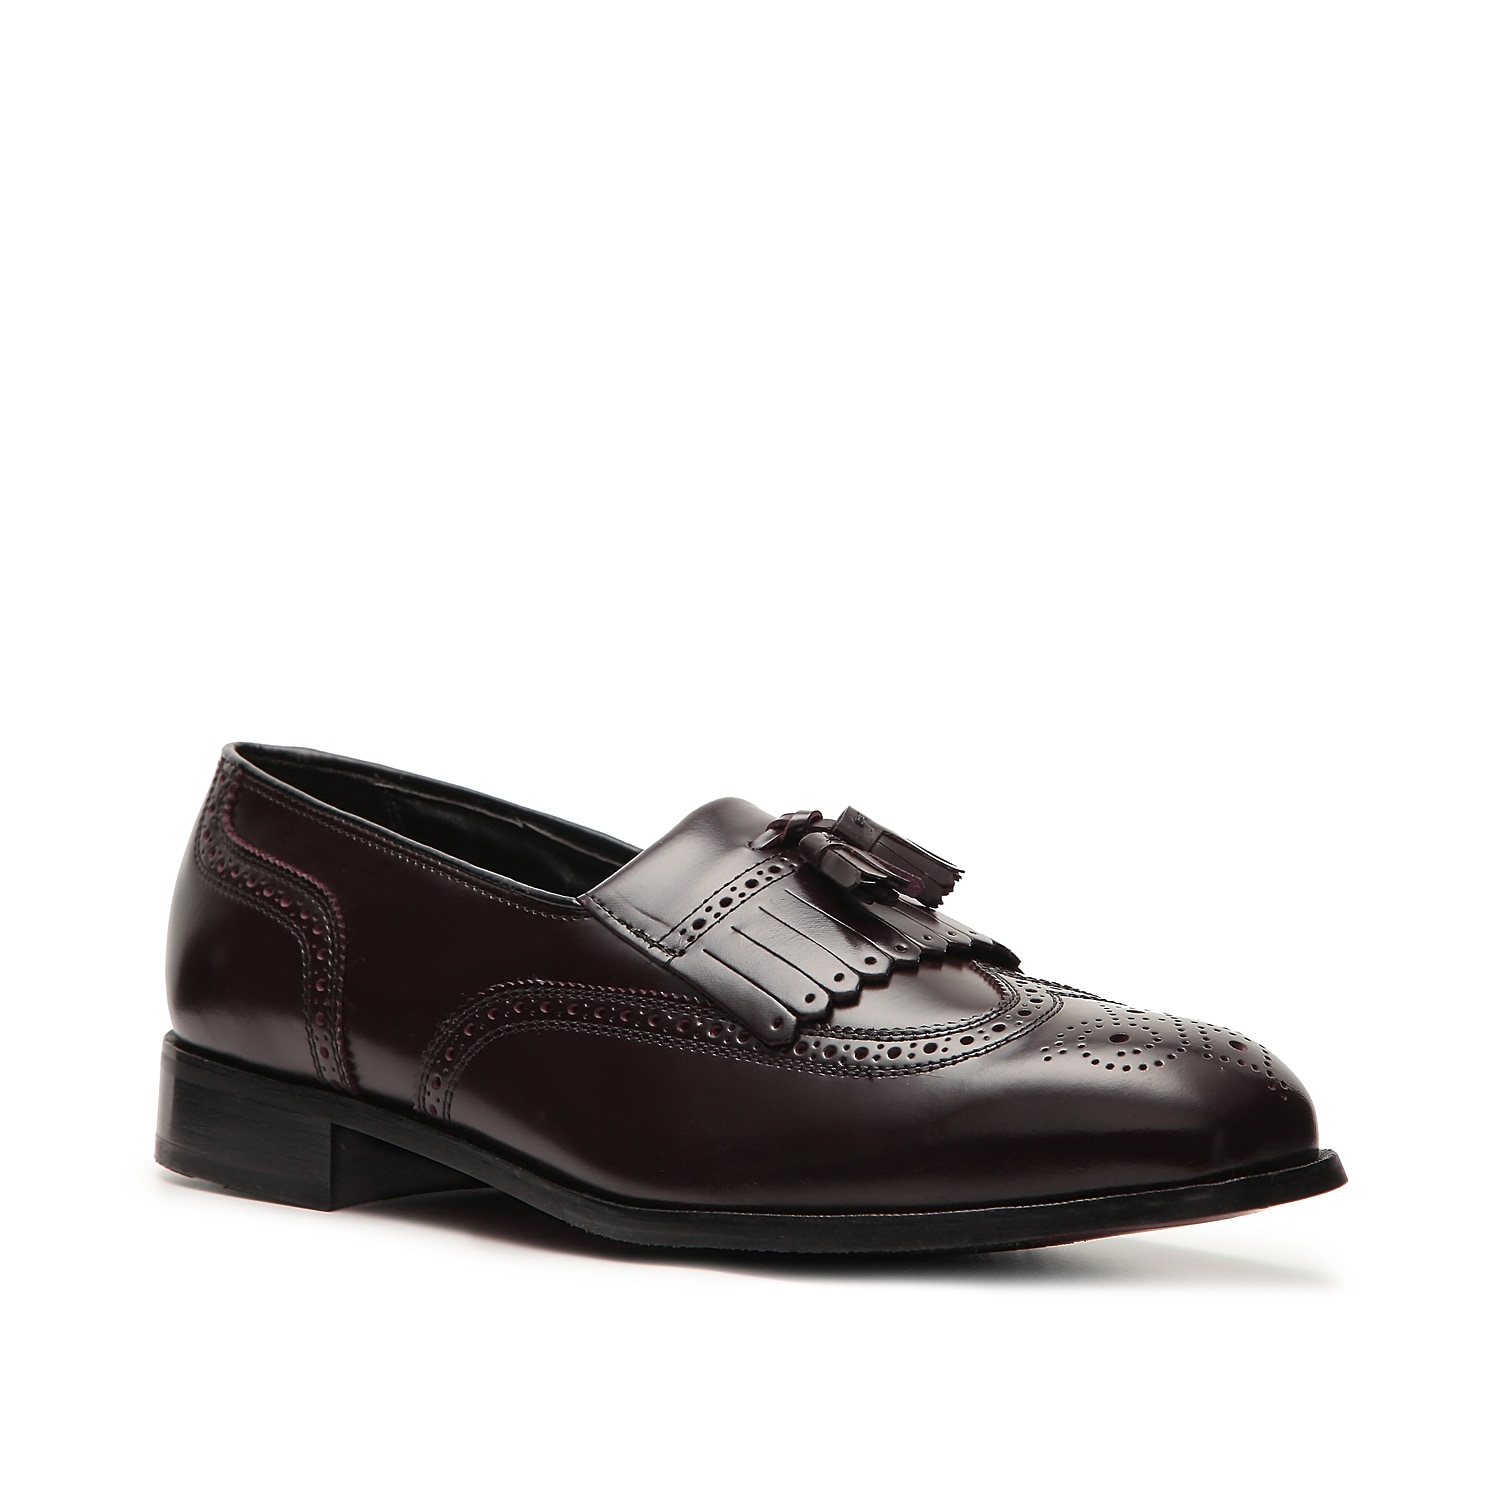 Walk confident in the Lexington loafer fromFlorsheim! This classic slip-on featureswingtipand brogue styling with a kiltie tassel for an added twist.